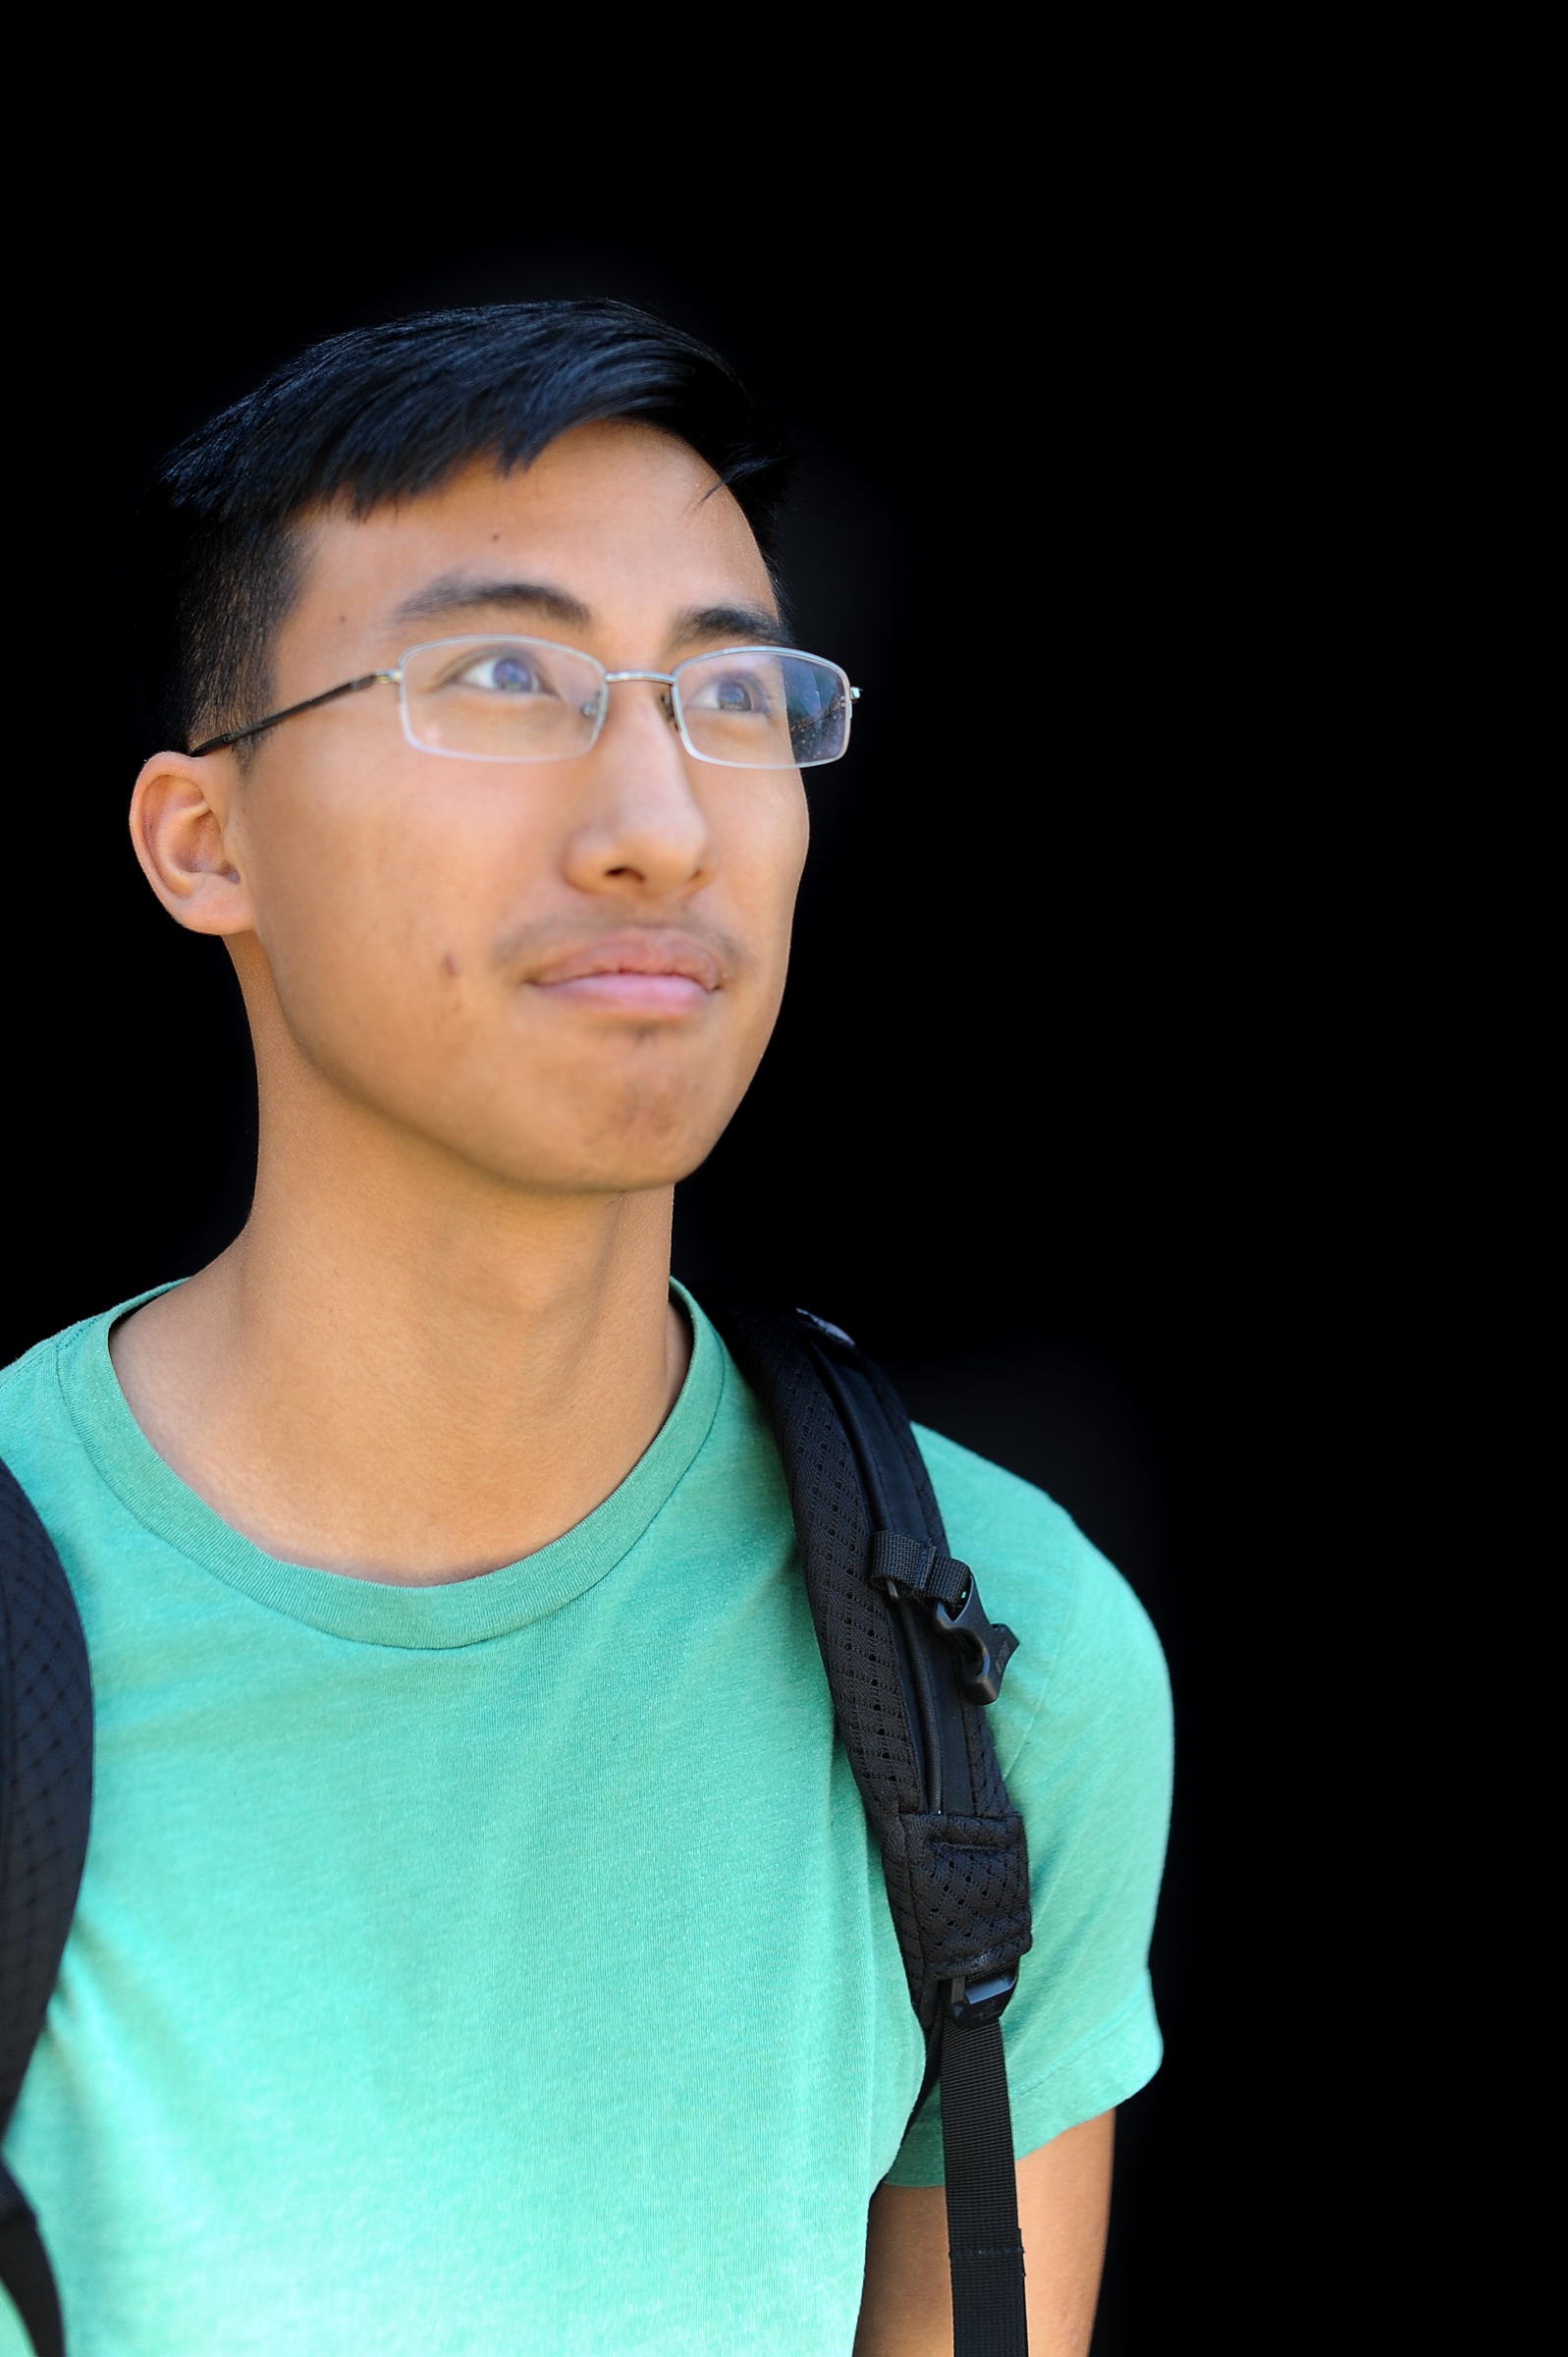 Name: Justin Tran 